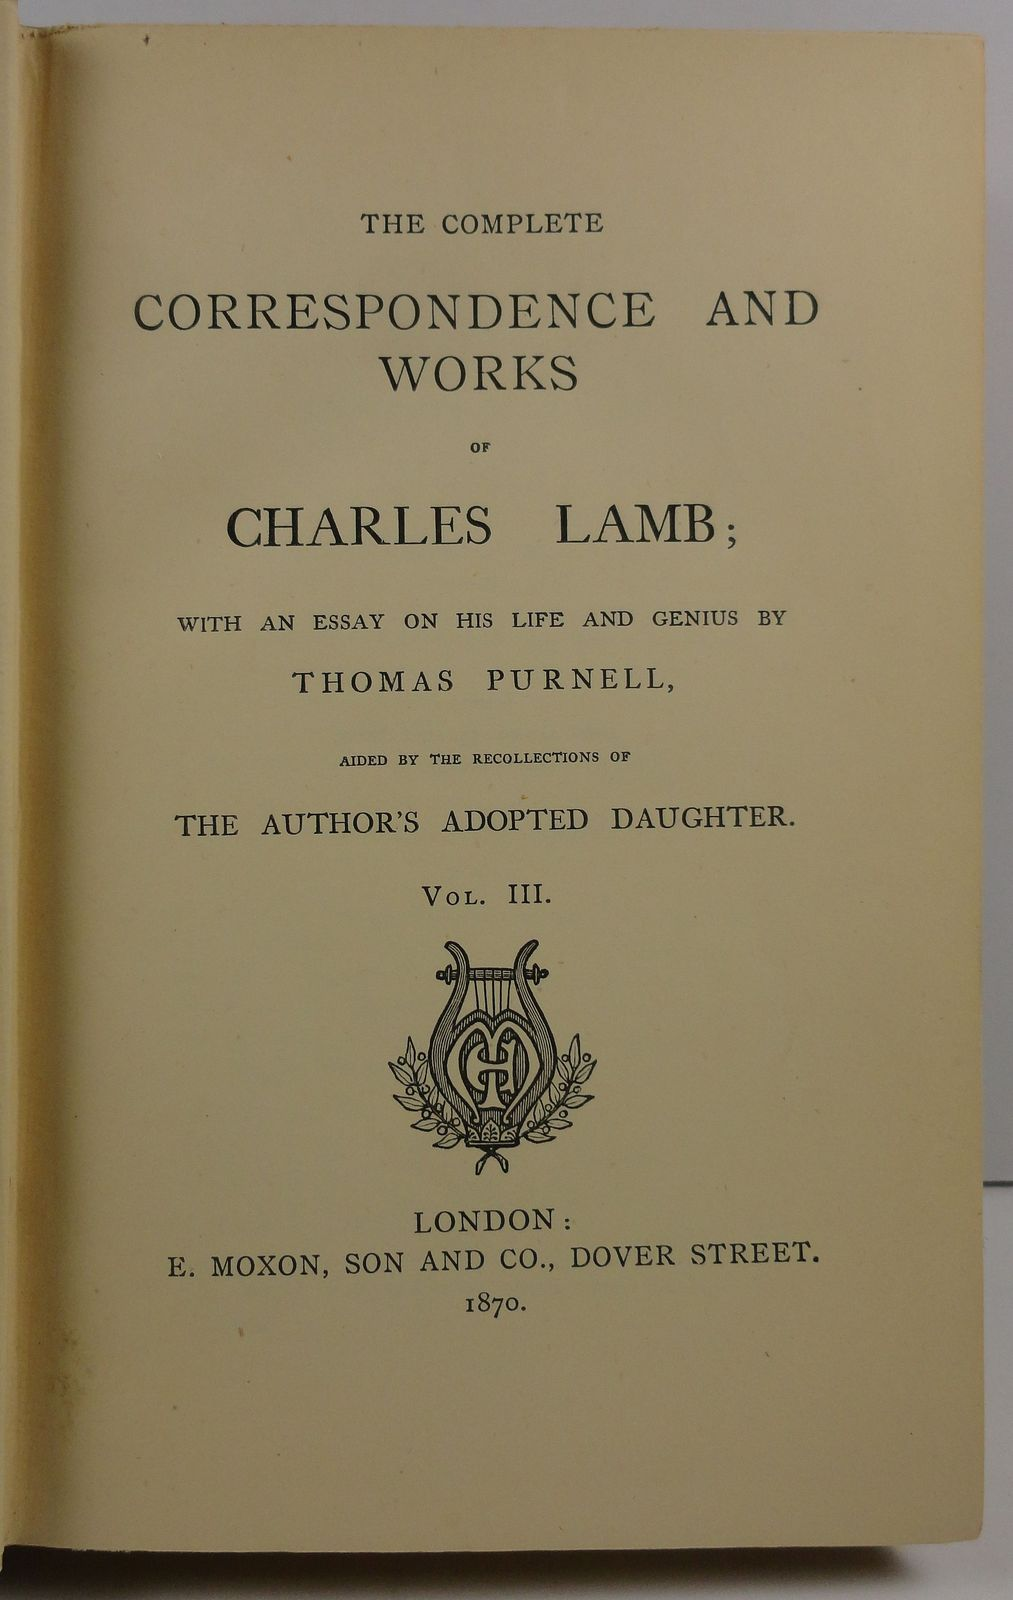 The Complete Correspondence and Works of Charles Lamb Vol. 3